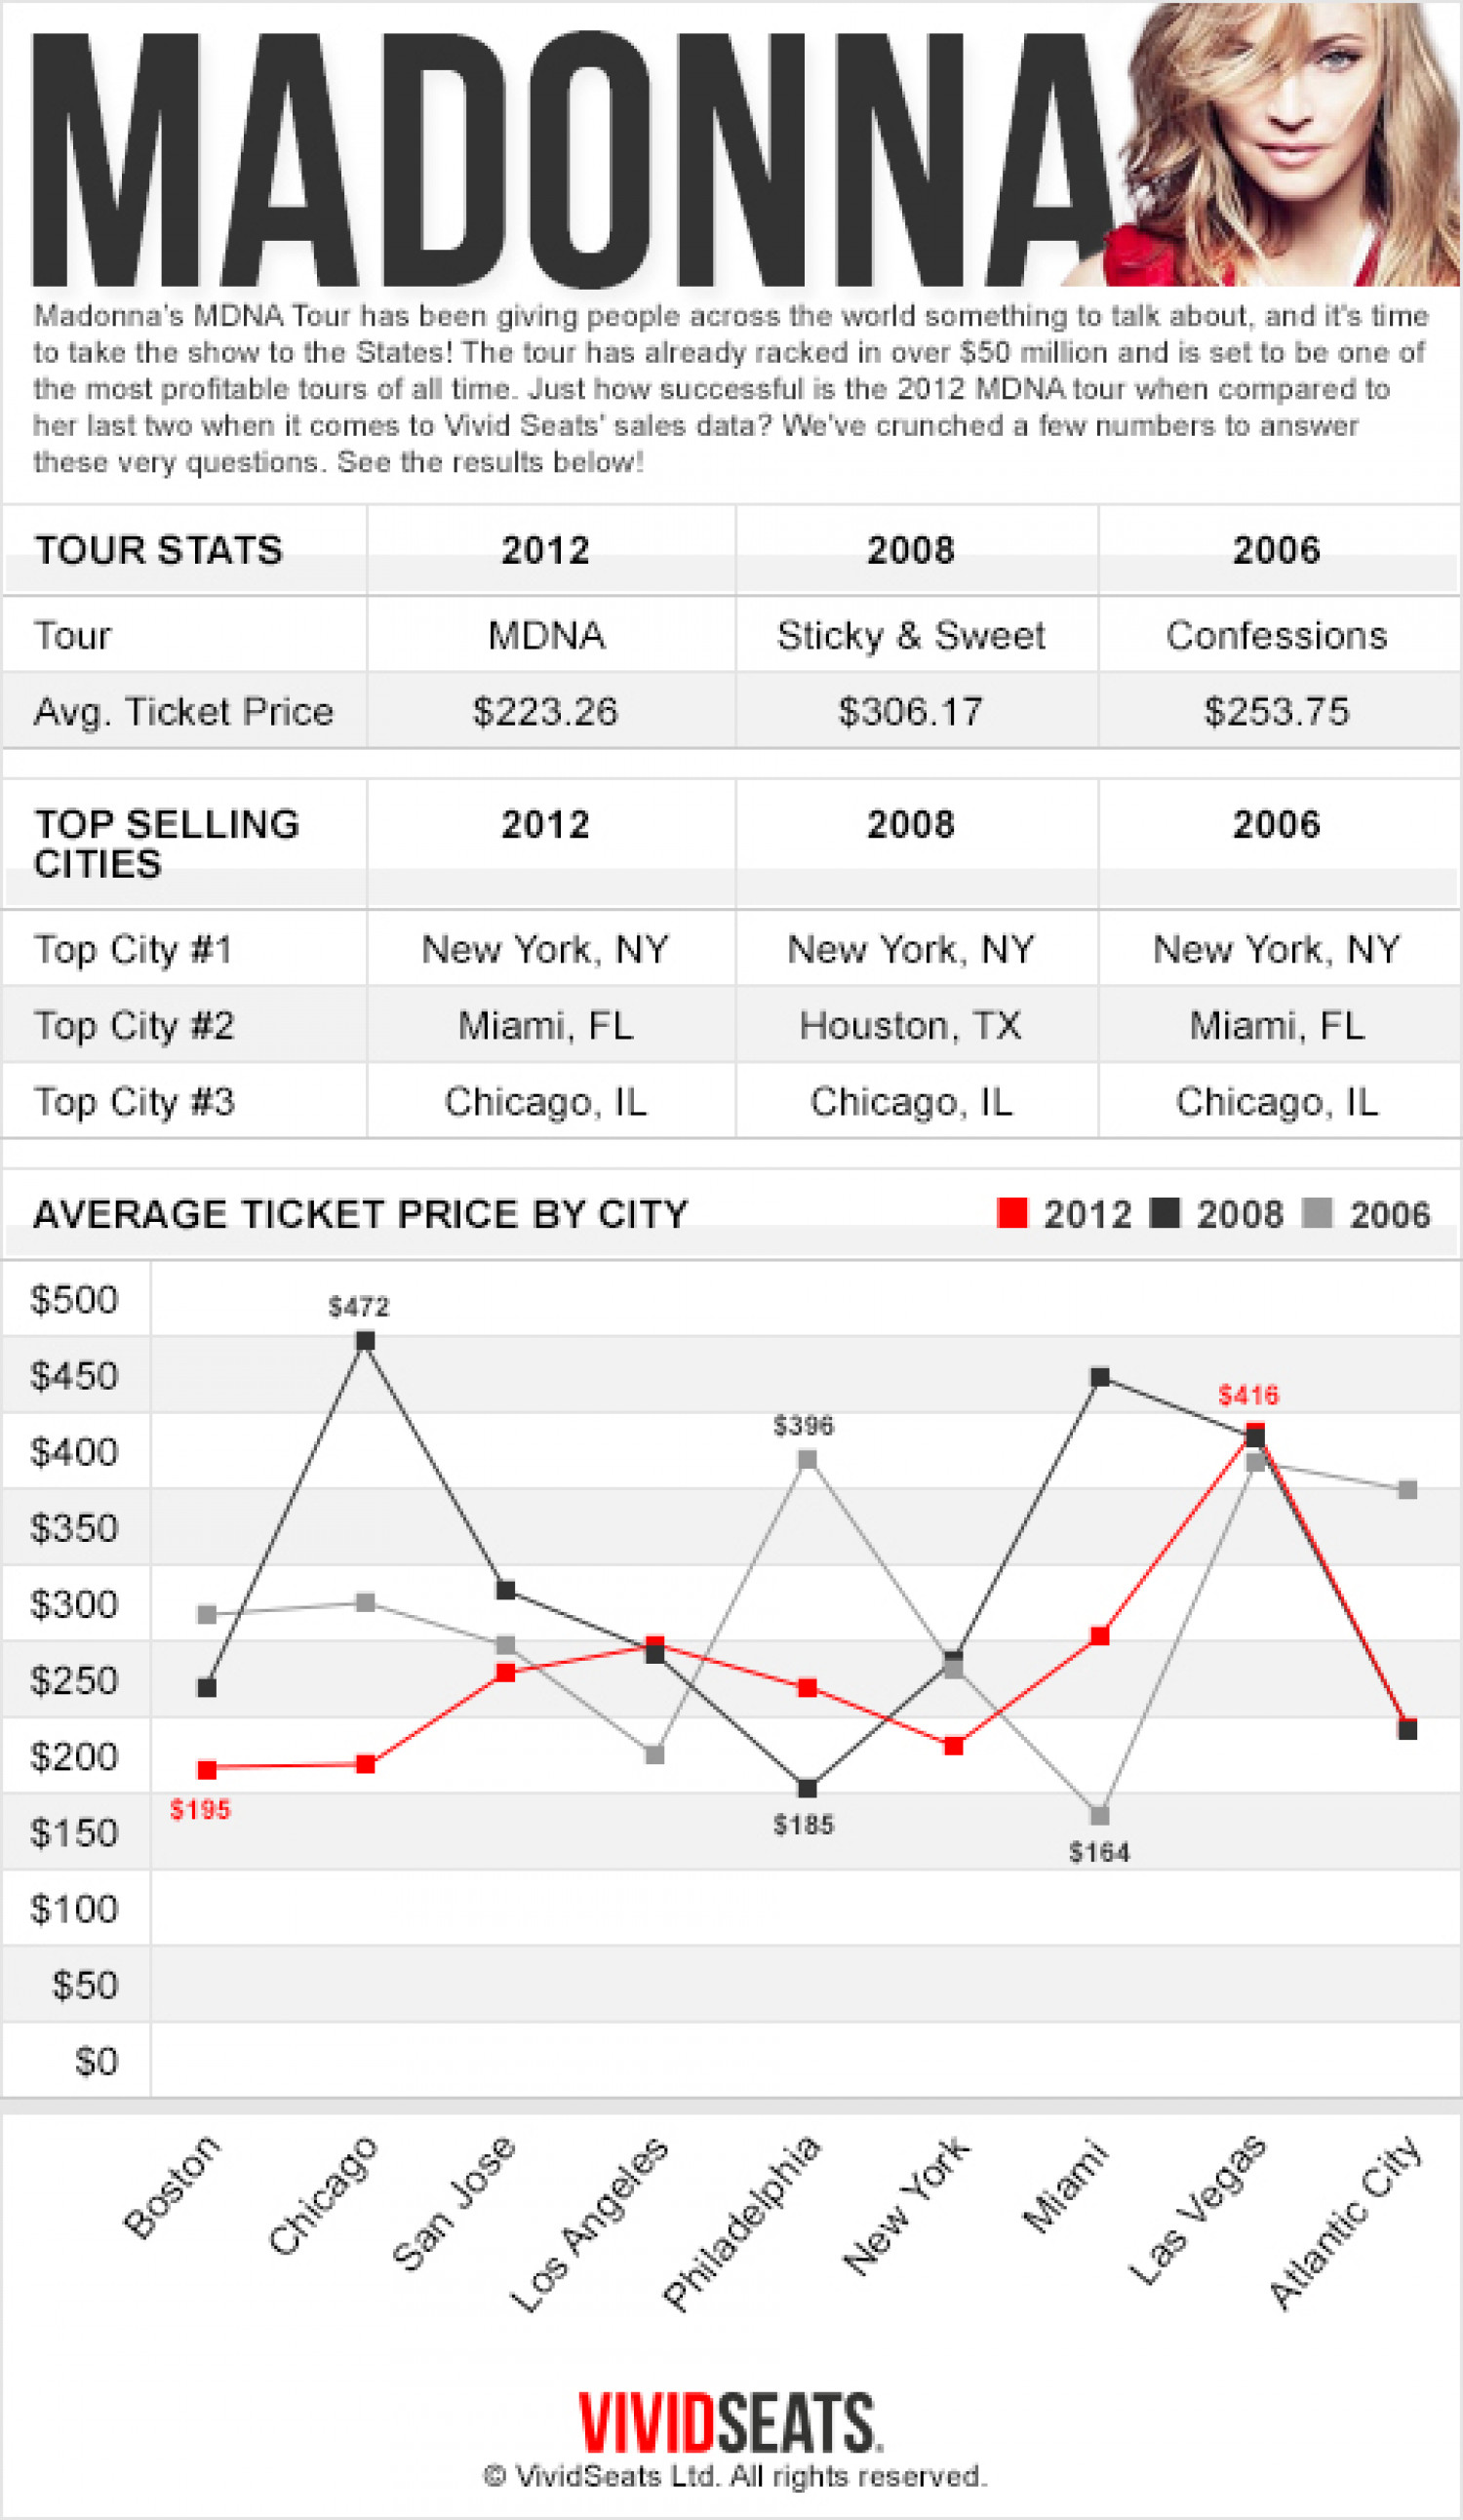 Madonna MDNA Tour Ticket Sales Infographic Infographic